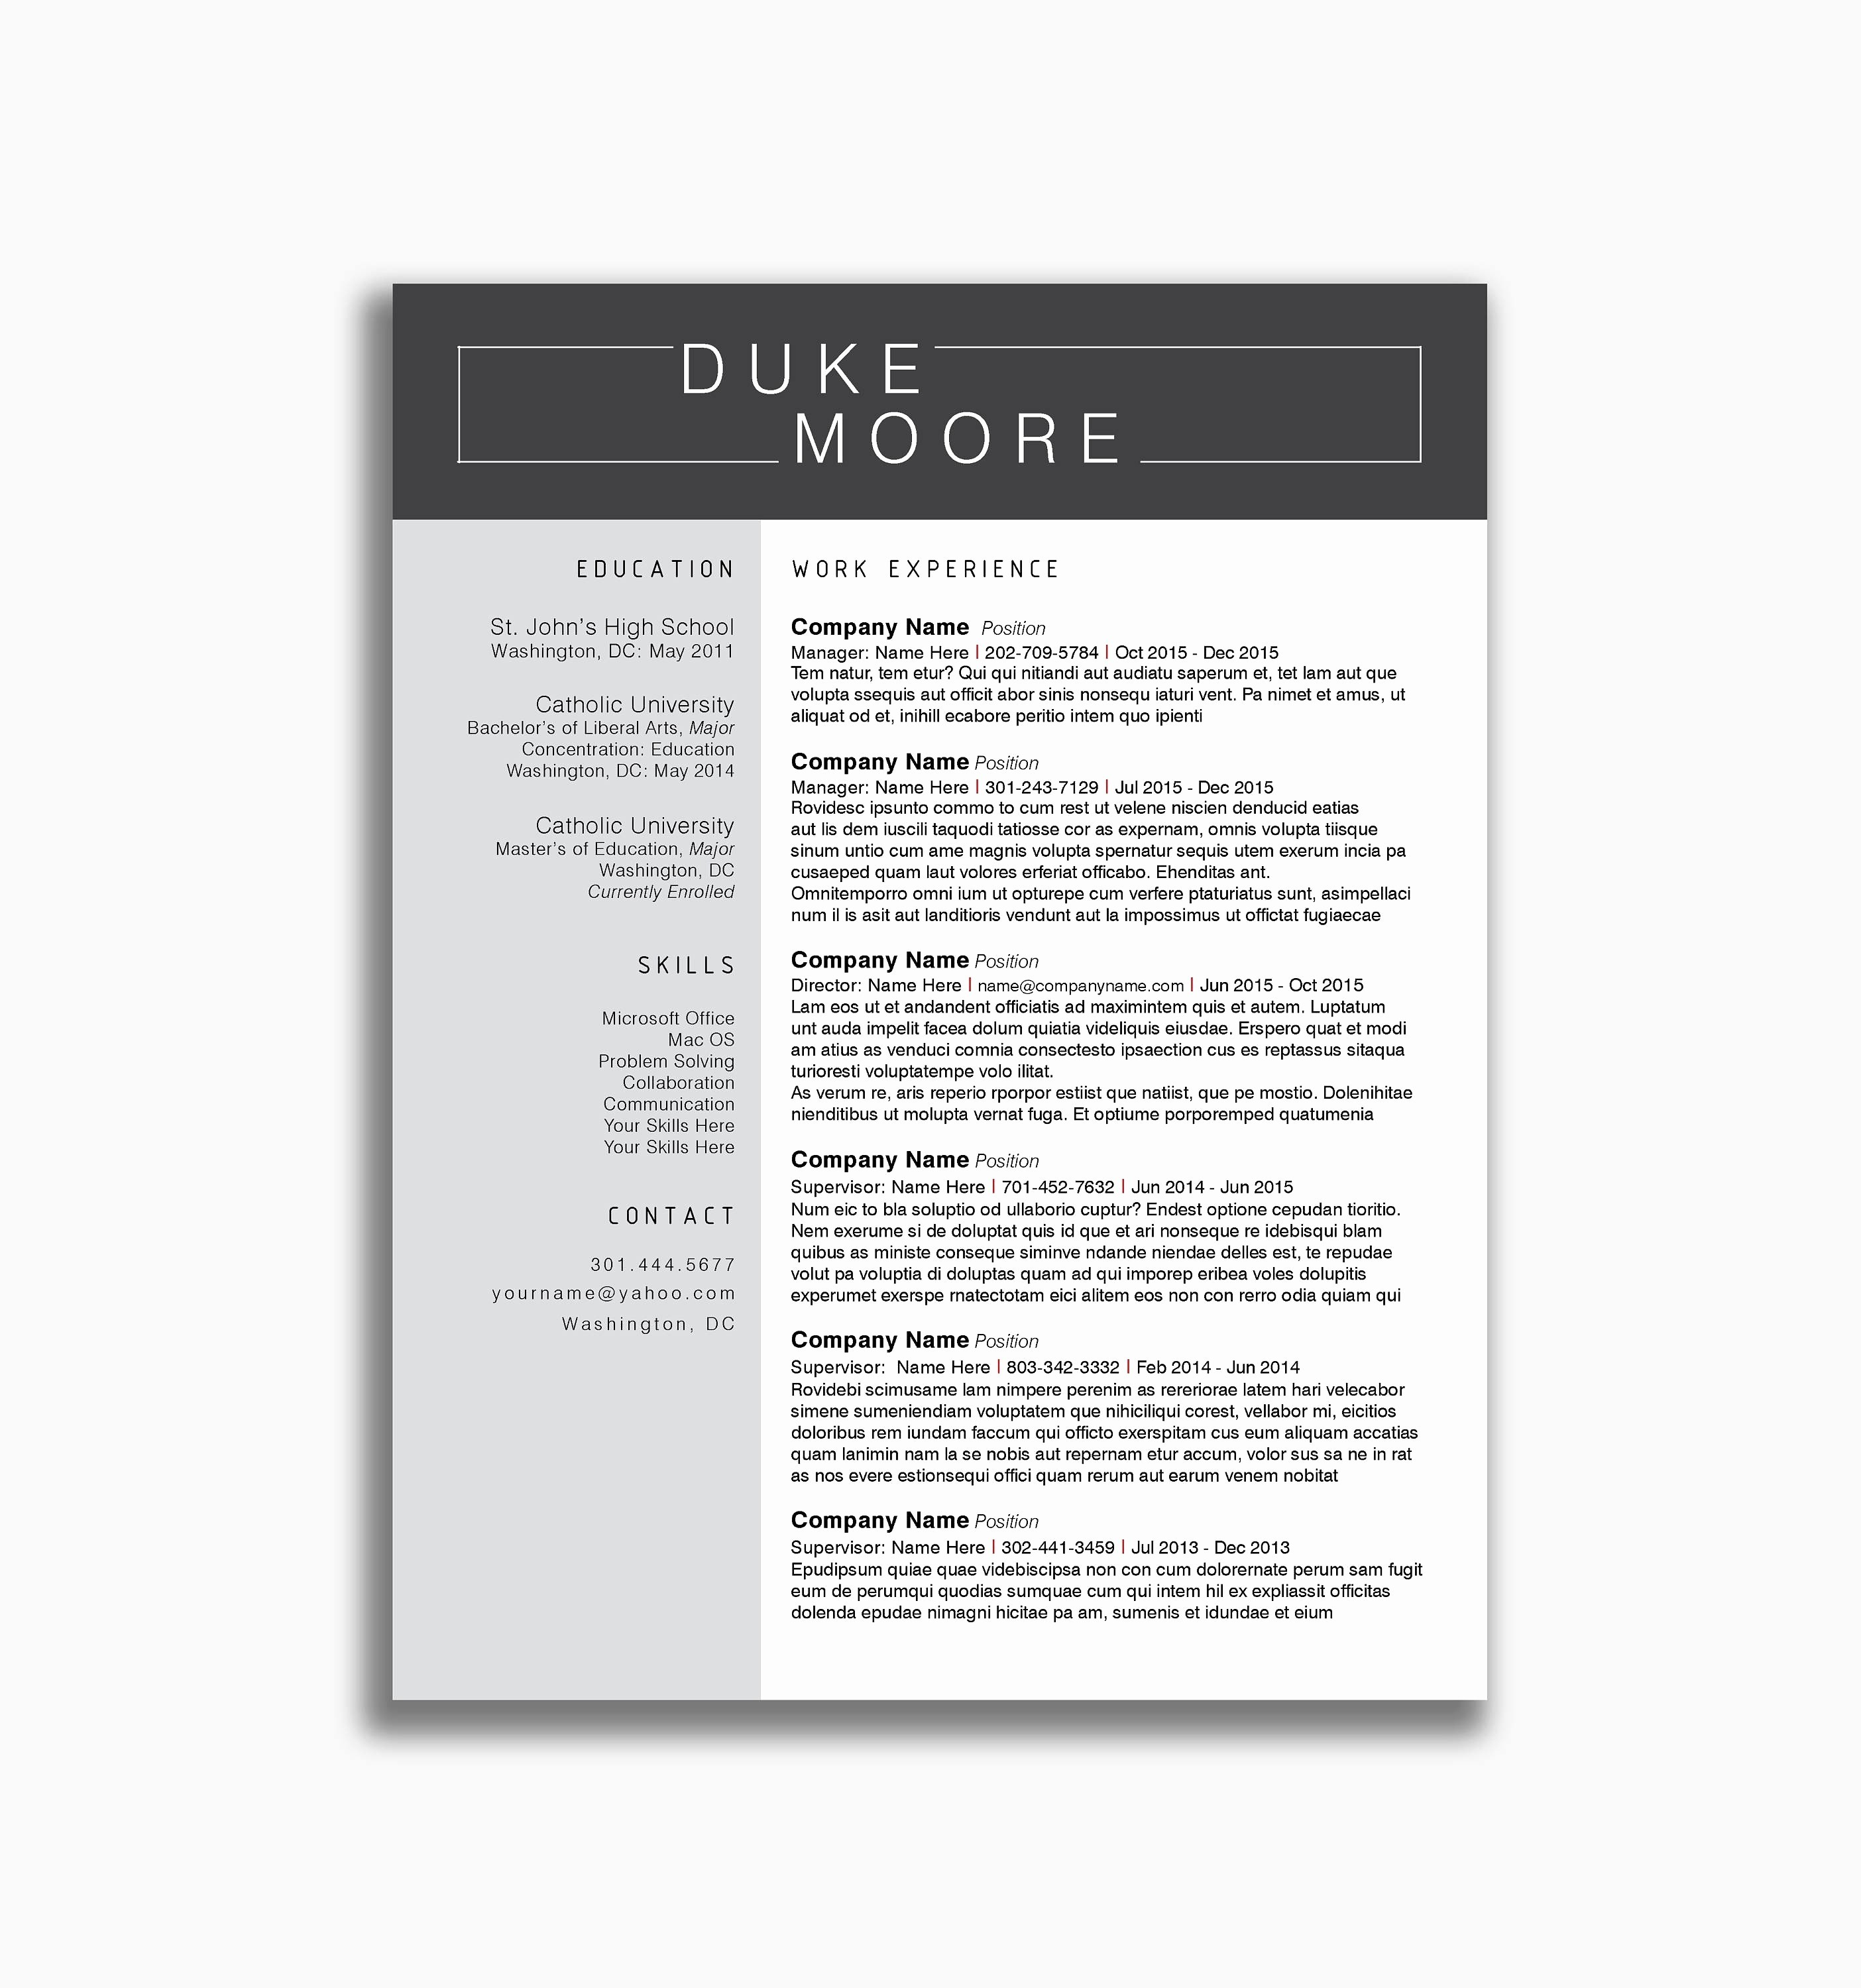 University Of Alabama Resume Template - Objective for Resume Lecturer Awesome Descriptive Words for Resume